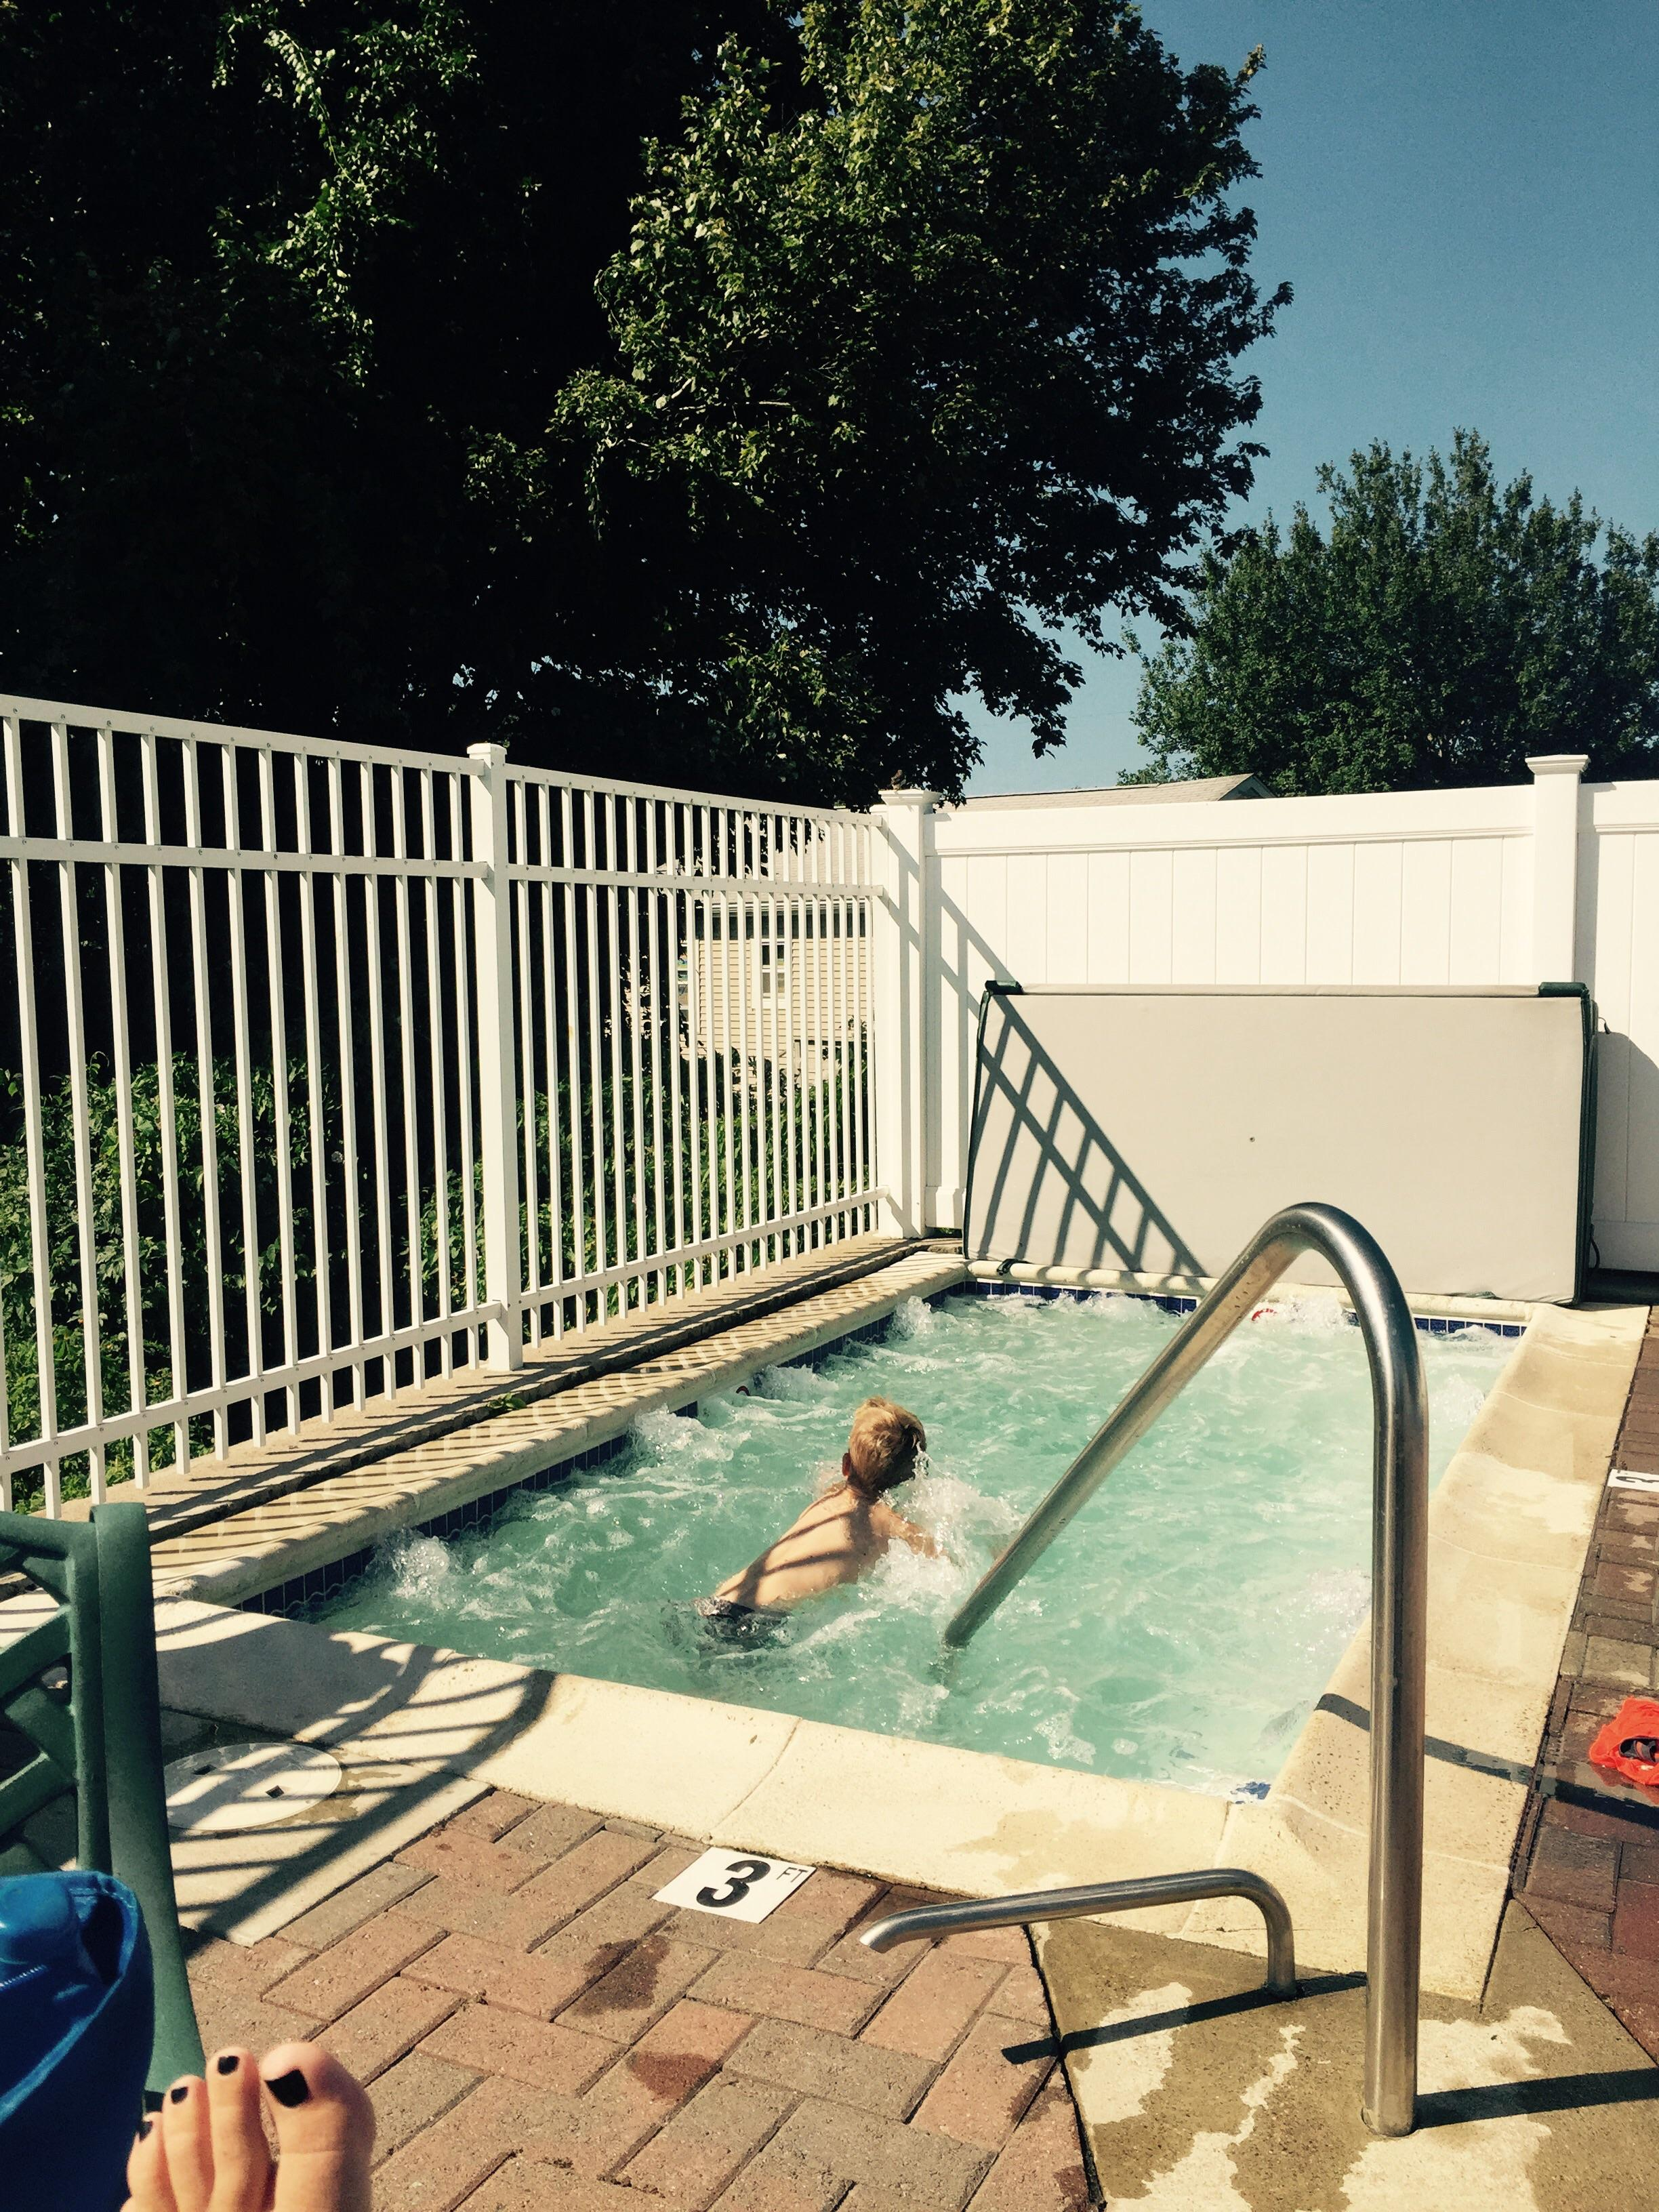 My son swimming in the hot tub